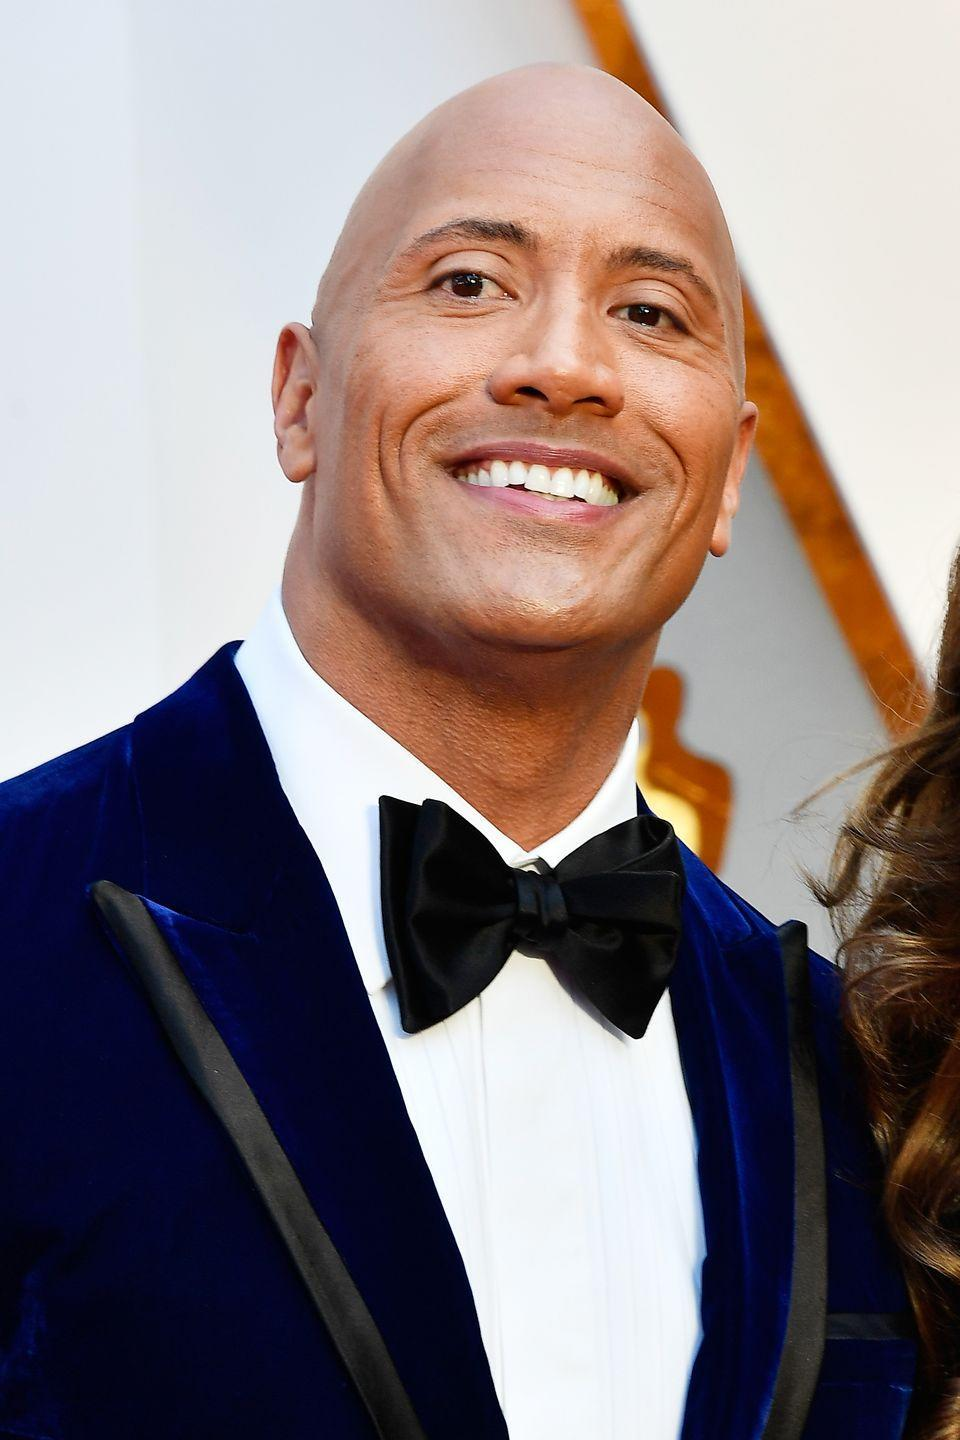 <p>We can give ol' Dwayne a break, this was his first feature film and it primed him for his current role as the king of Hollywood.</p>